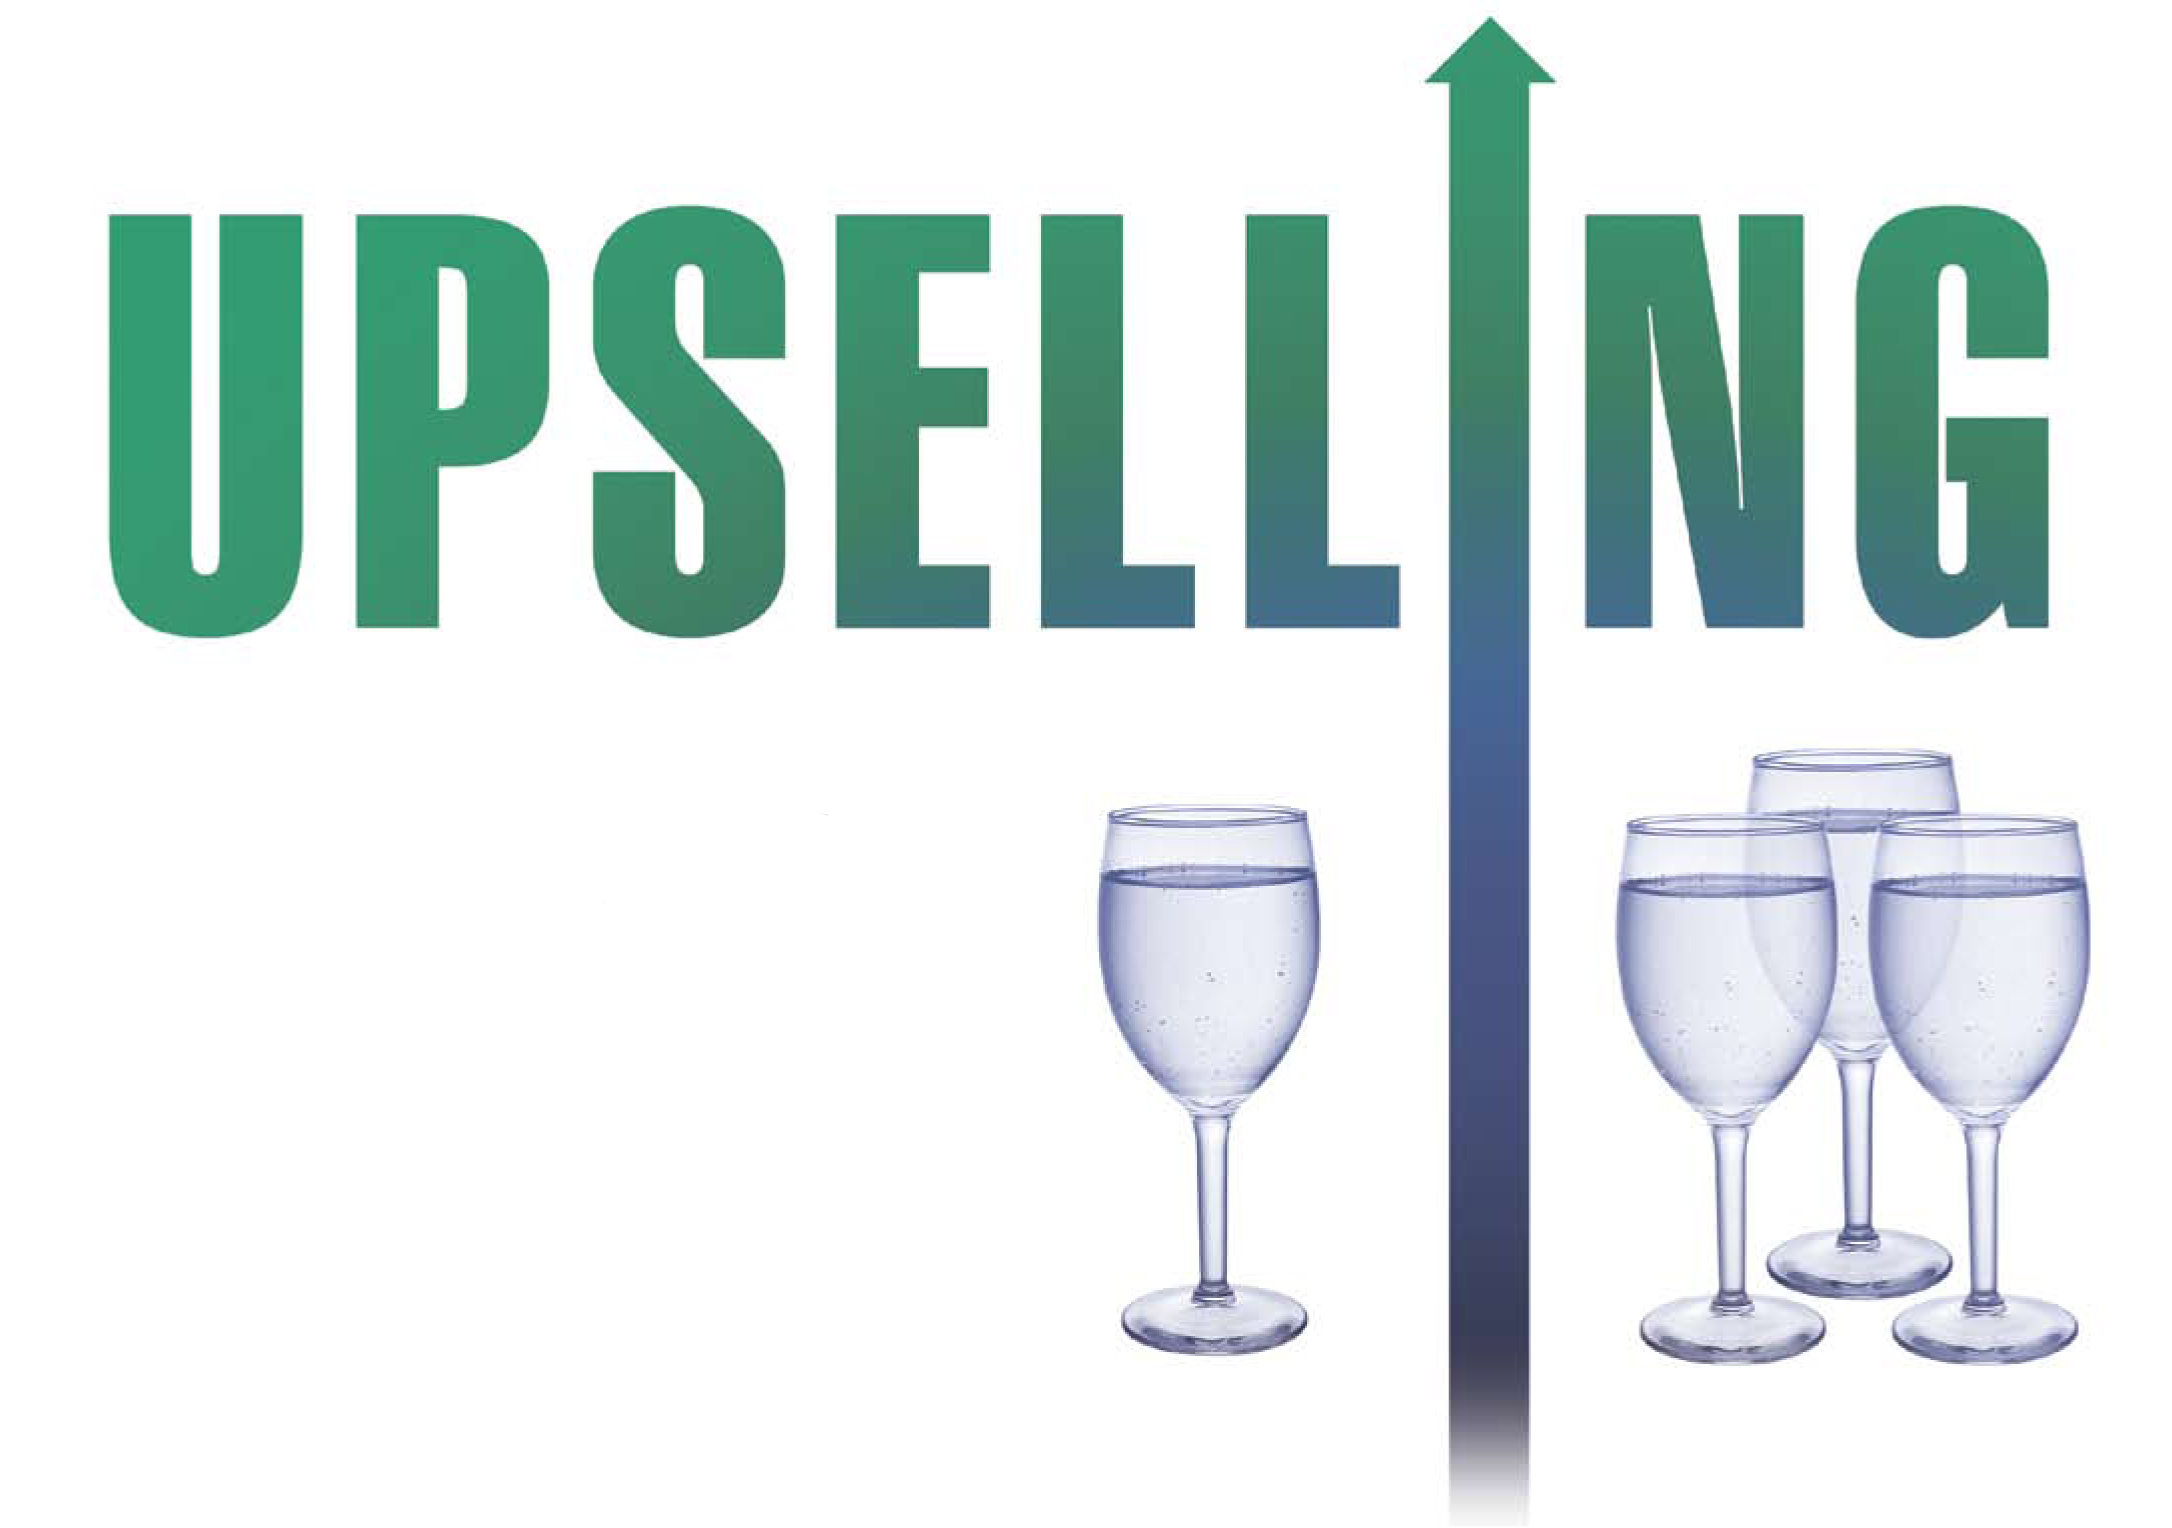 UPSELLING: The ART of the Sale ON-PREMISE | The Beverage Journal